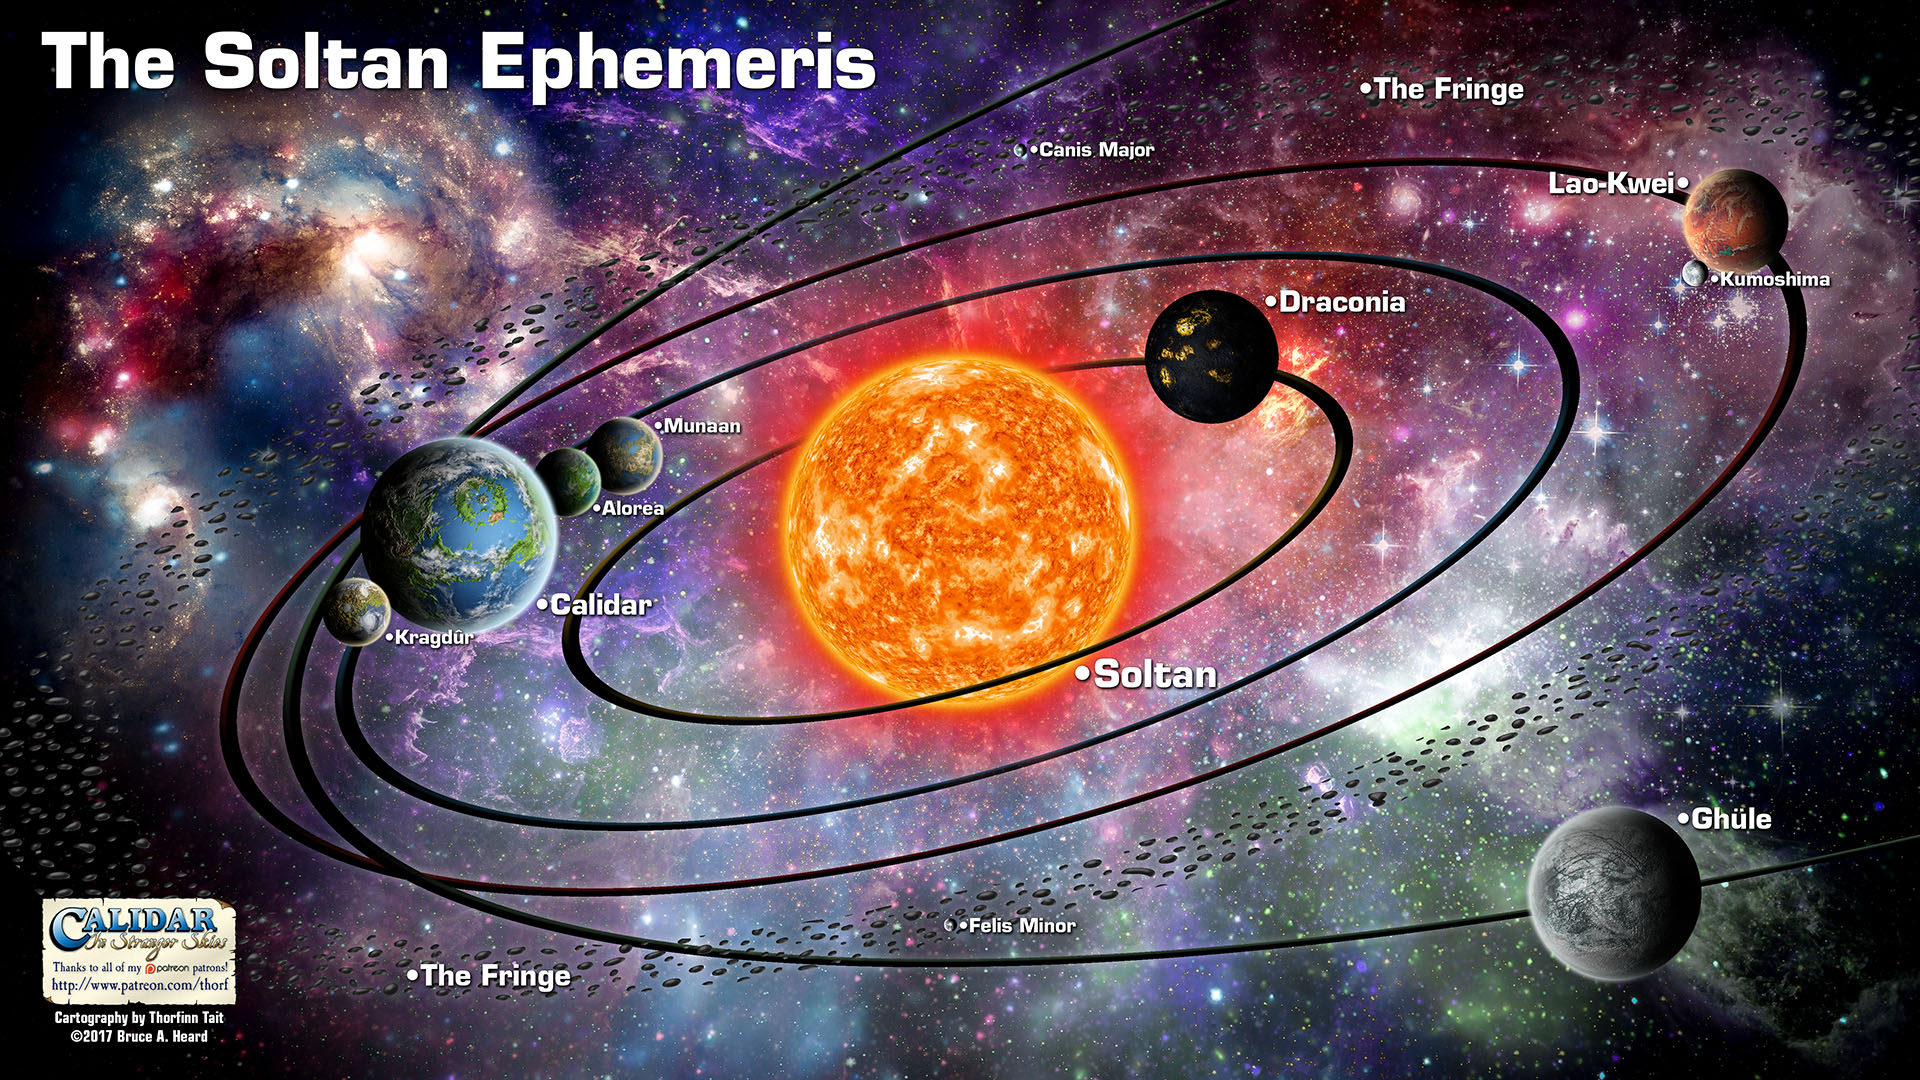 Soltan Ephemeris Illustration